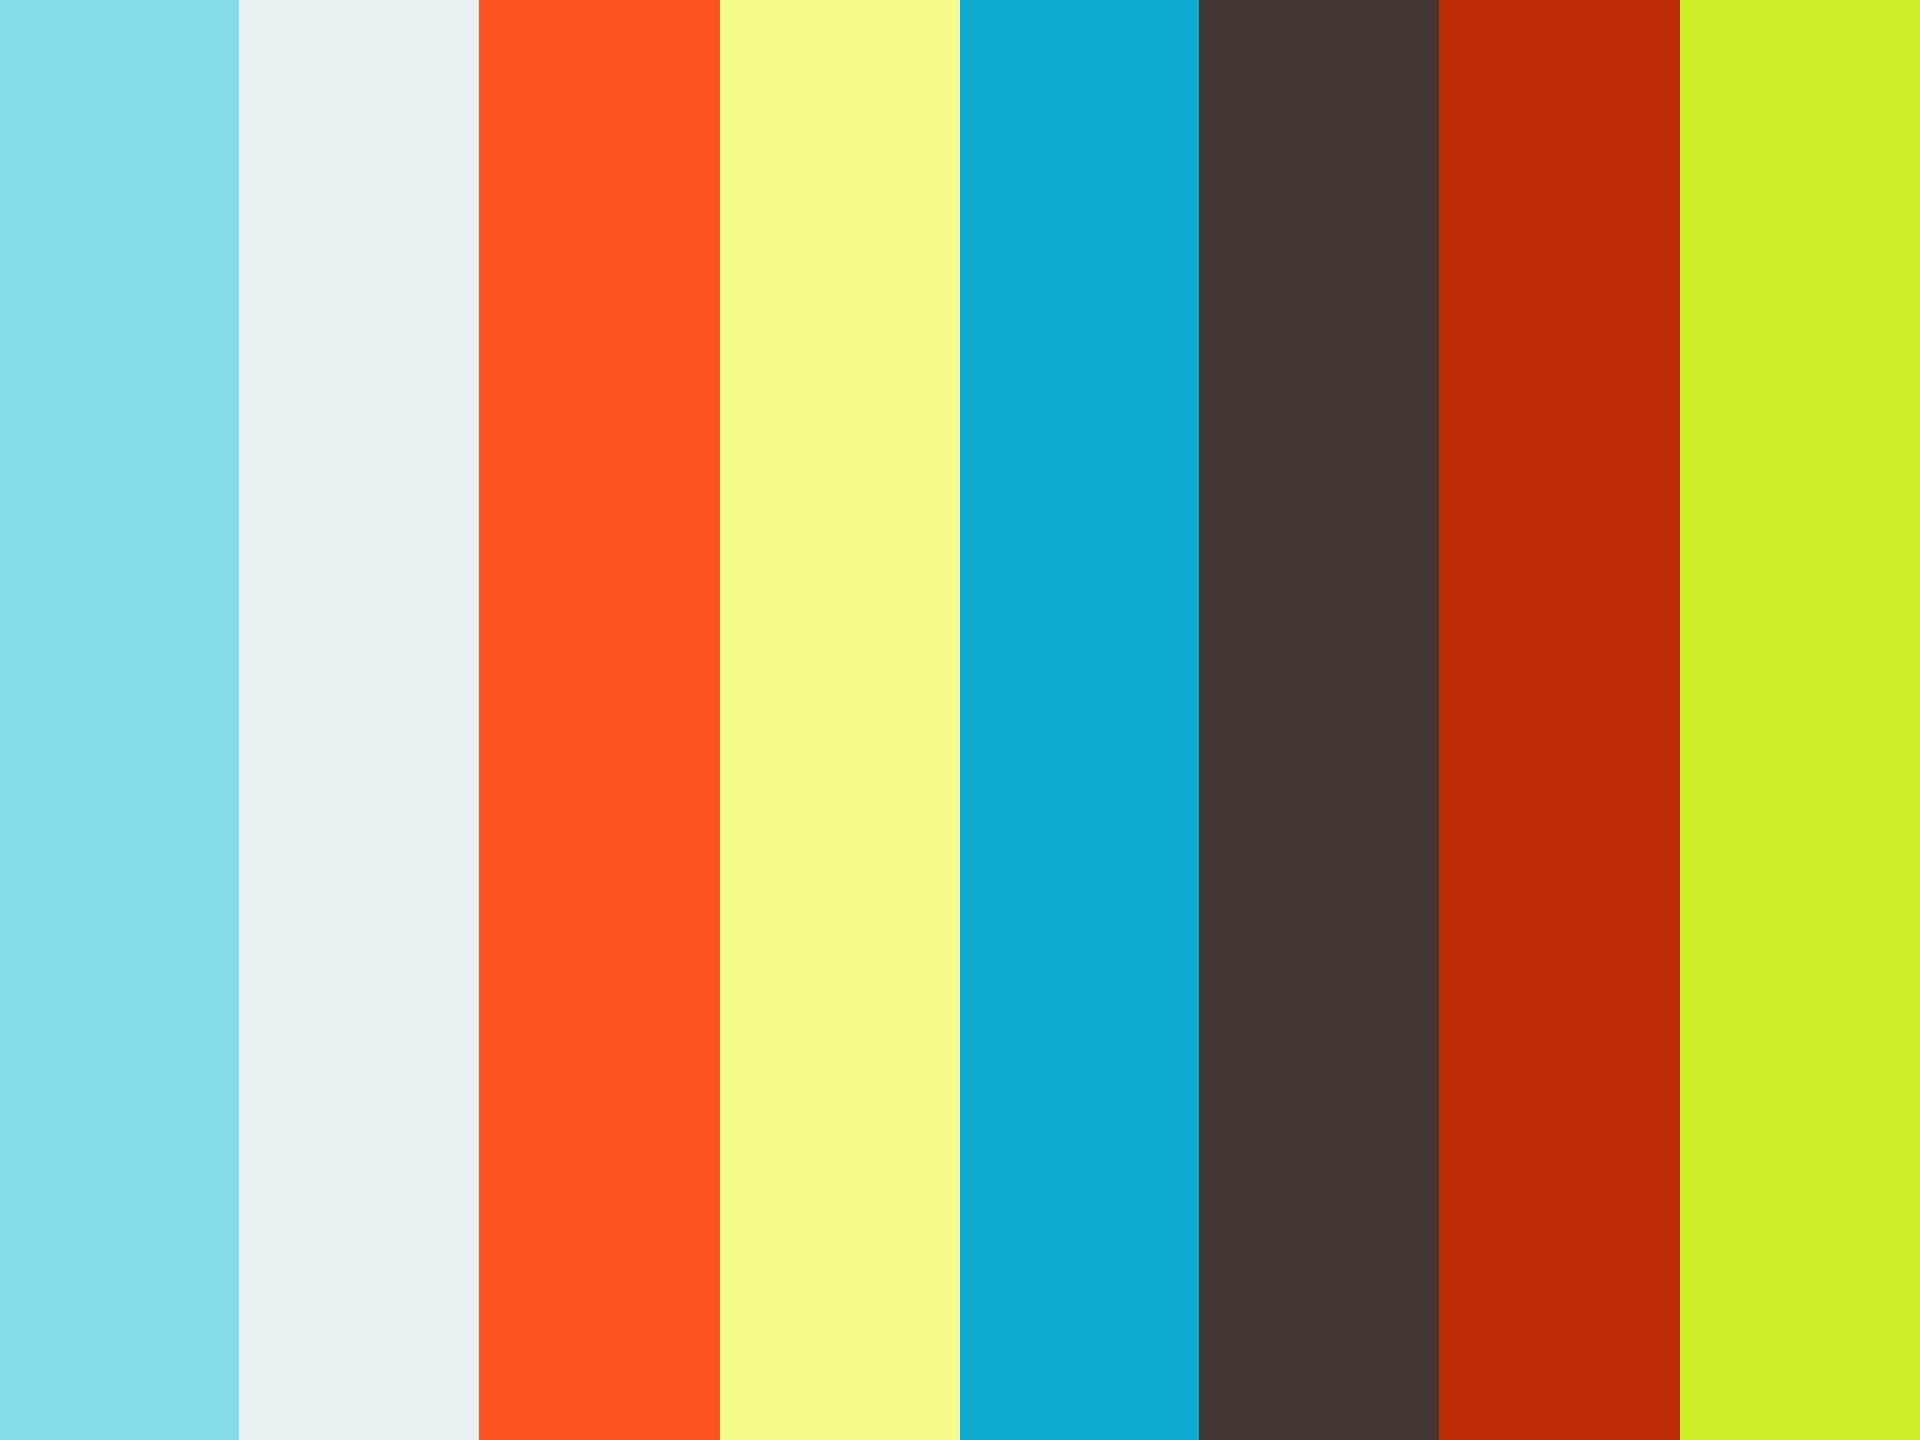 Fistula from CT-Guided Transgluteal Drainage: Founded Fear or Theoretical Risk? 2011